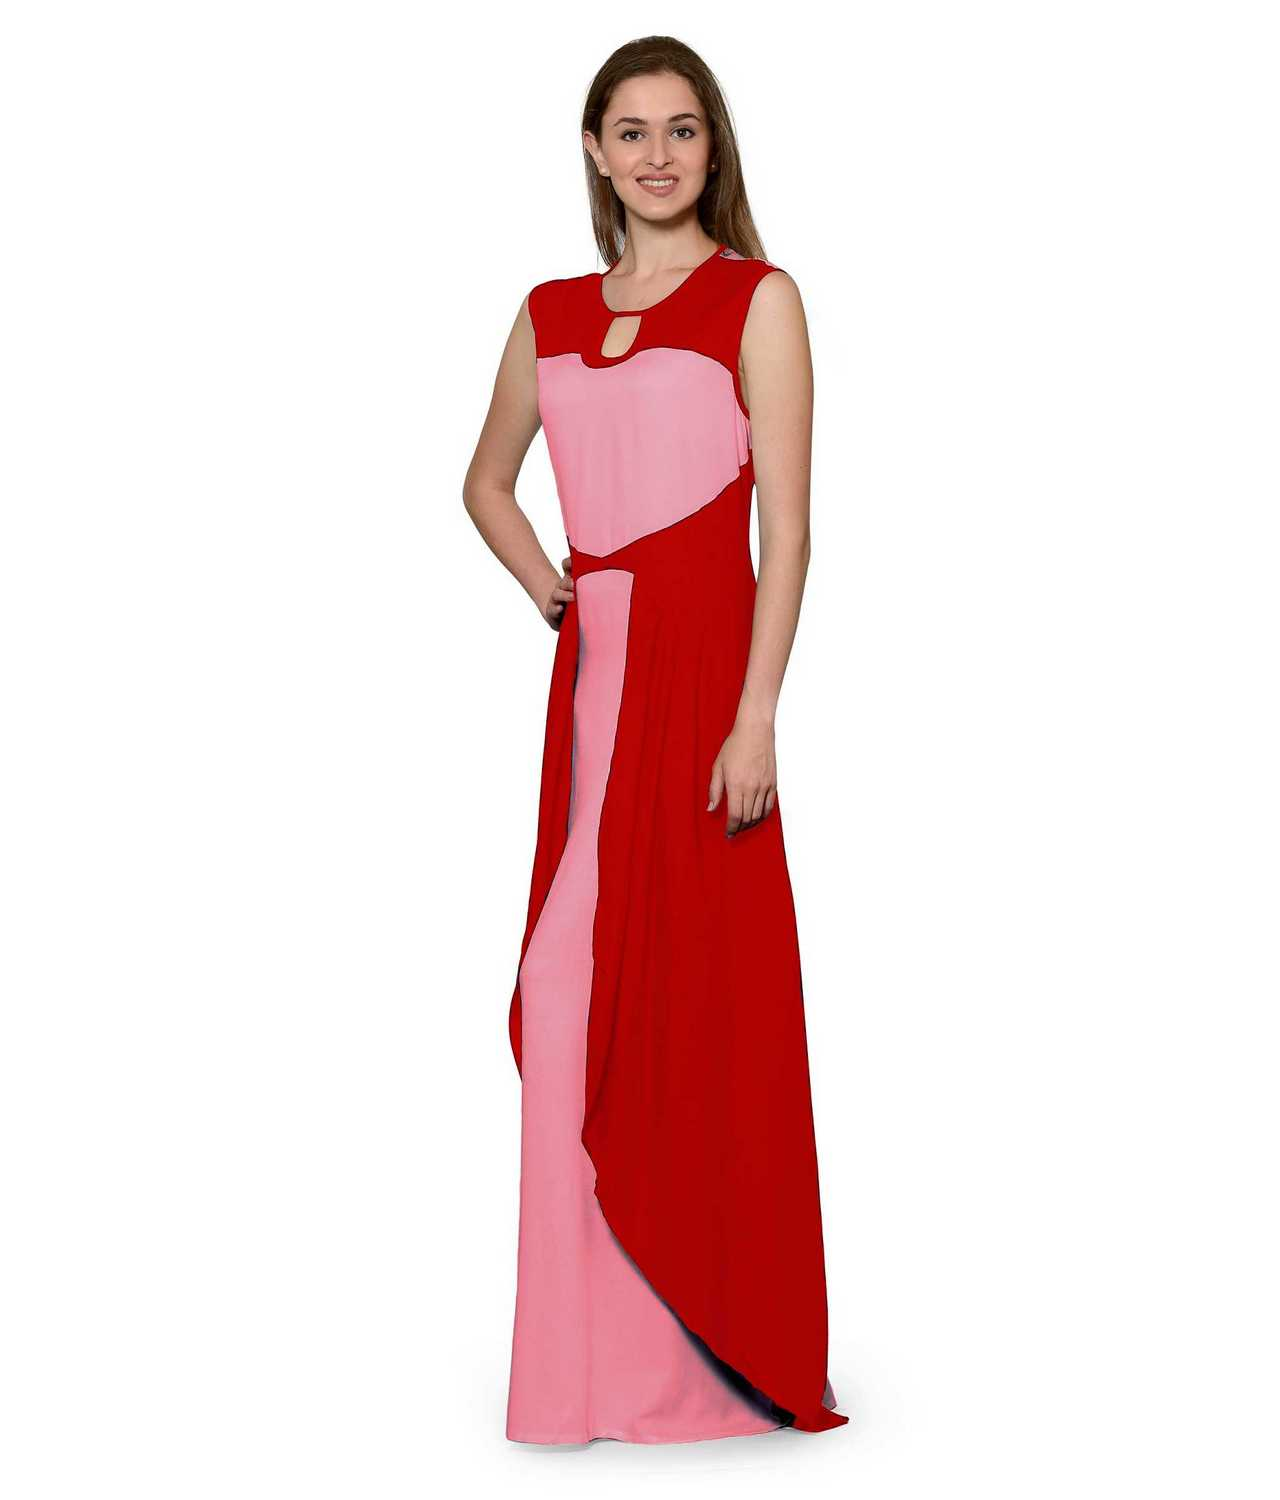 Color Block Maxi Dress or Gown  in Red:Vinyl Hot Pink